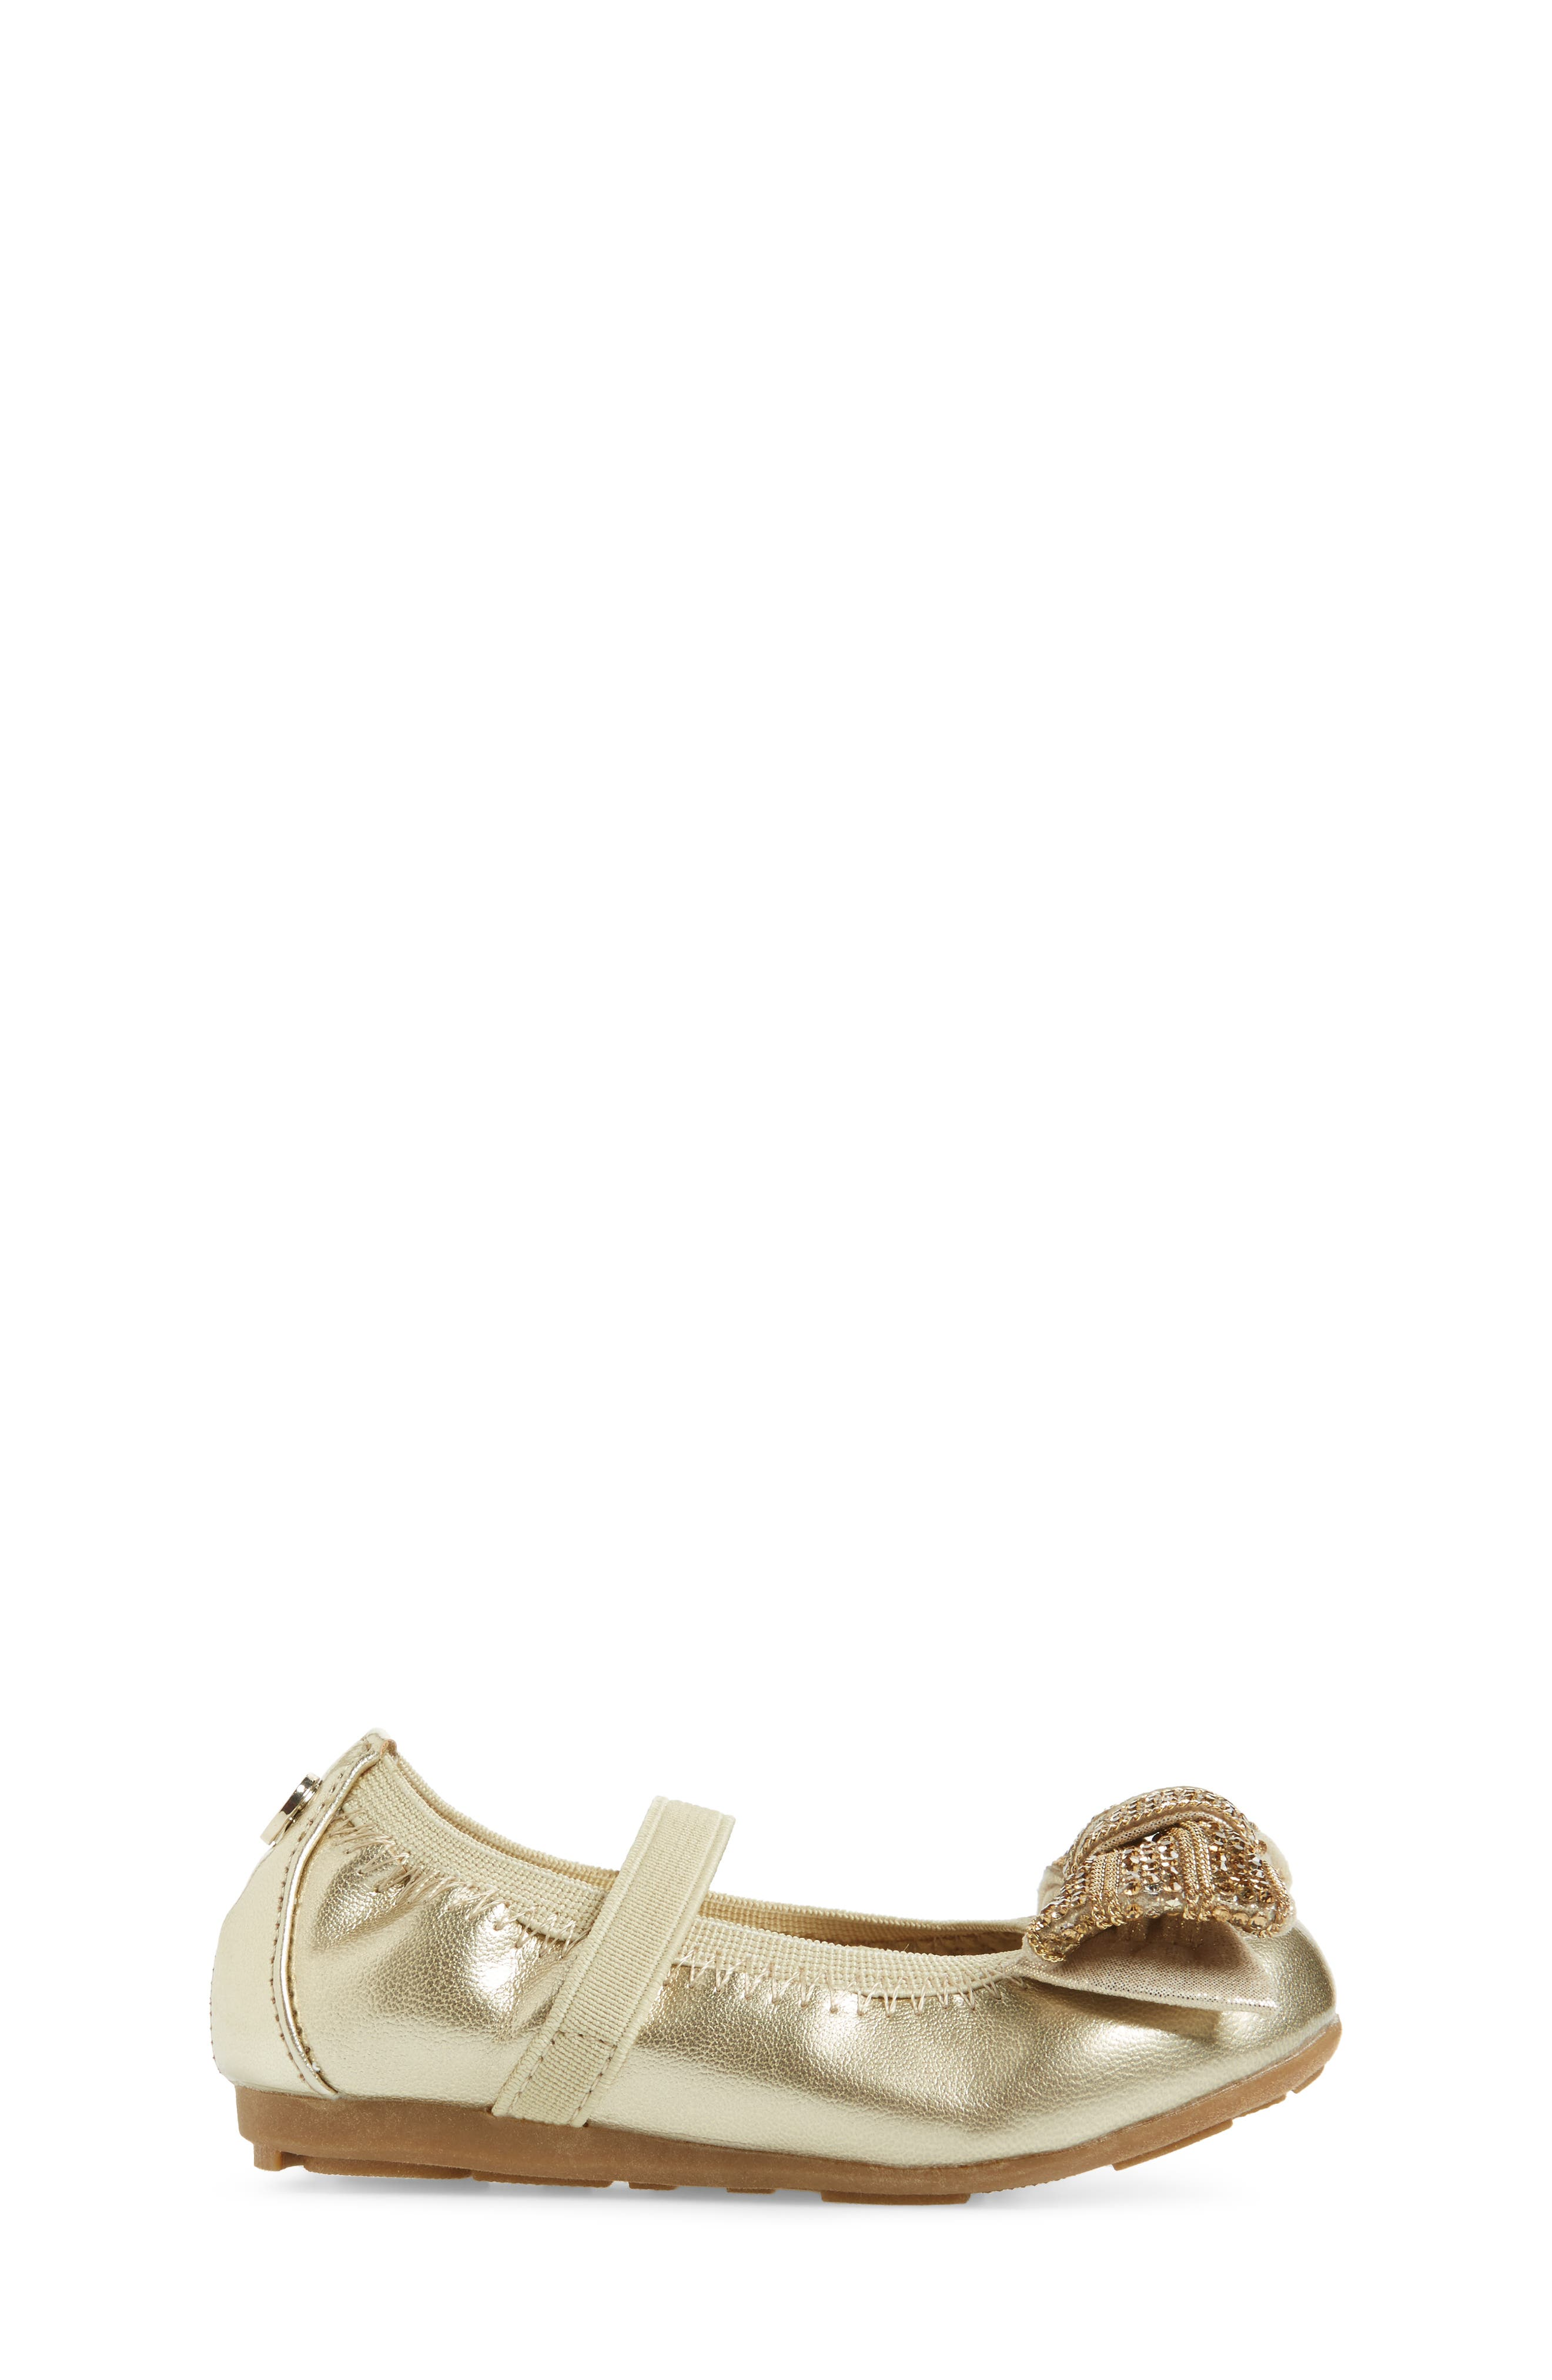 Fannie Embellished Bow Mary Jane Flat,                             Alternate thumbnail 9, color,